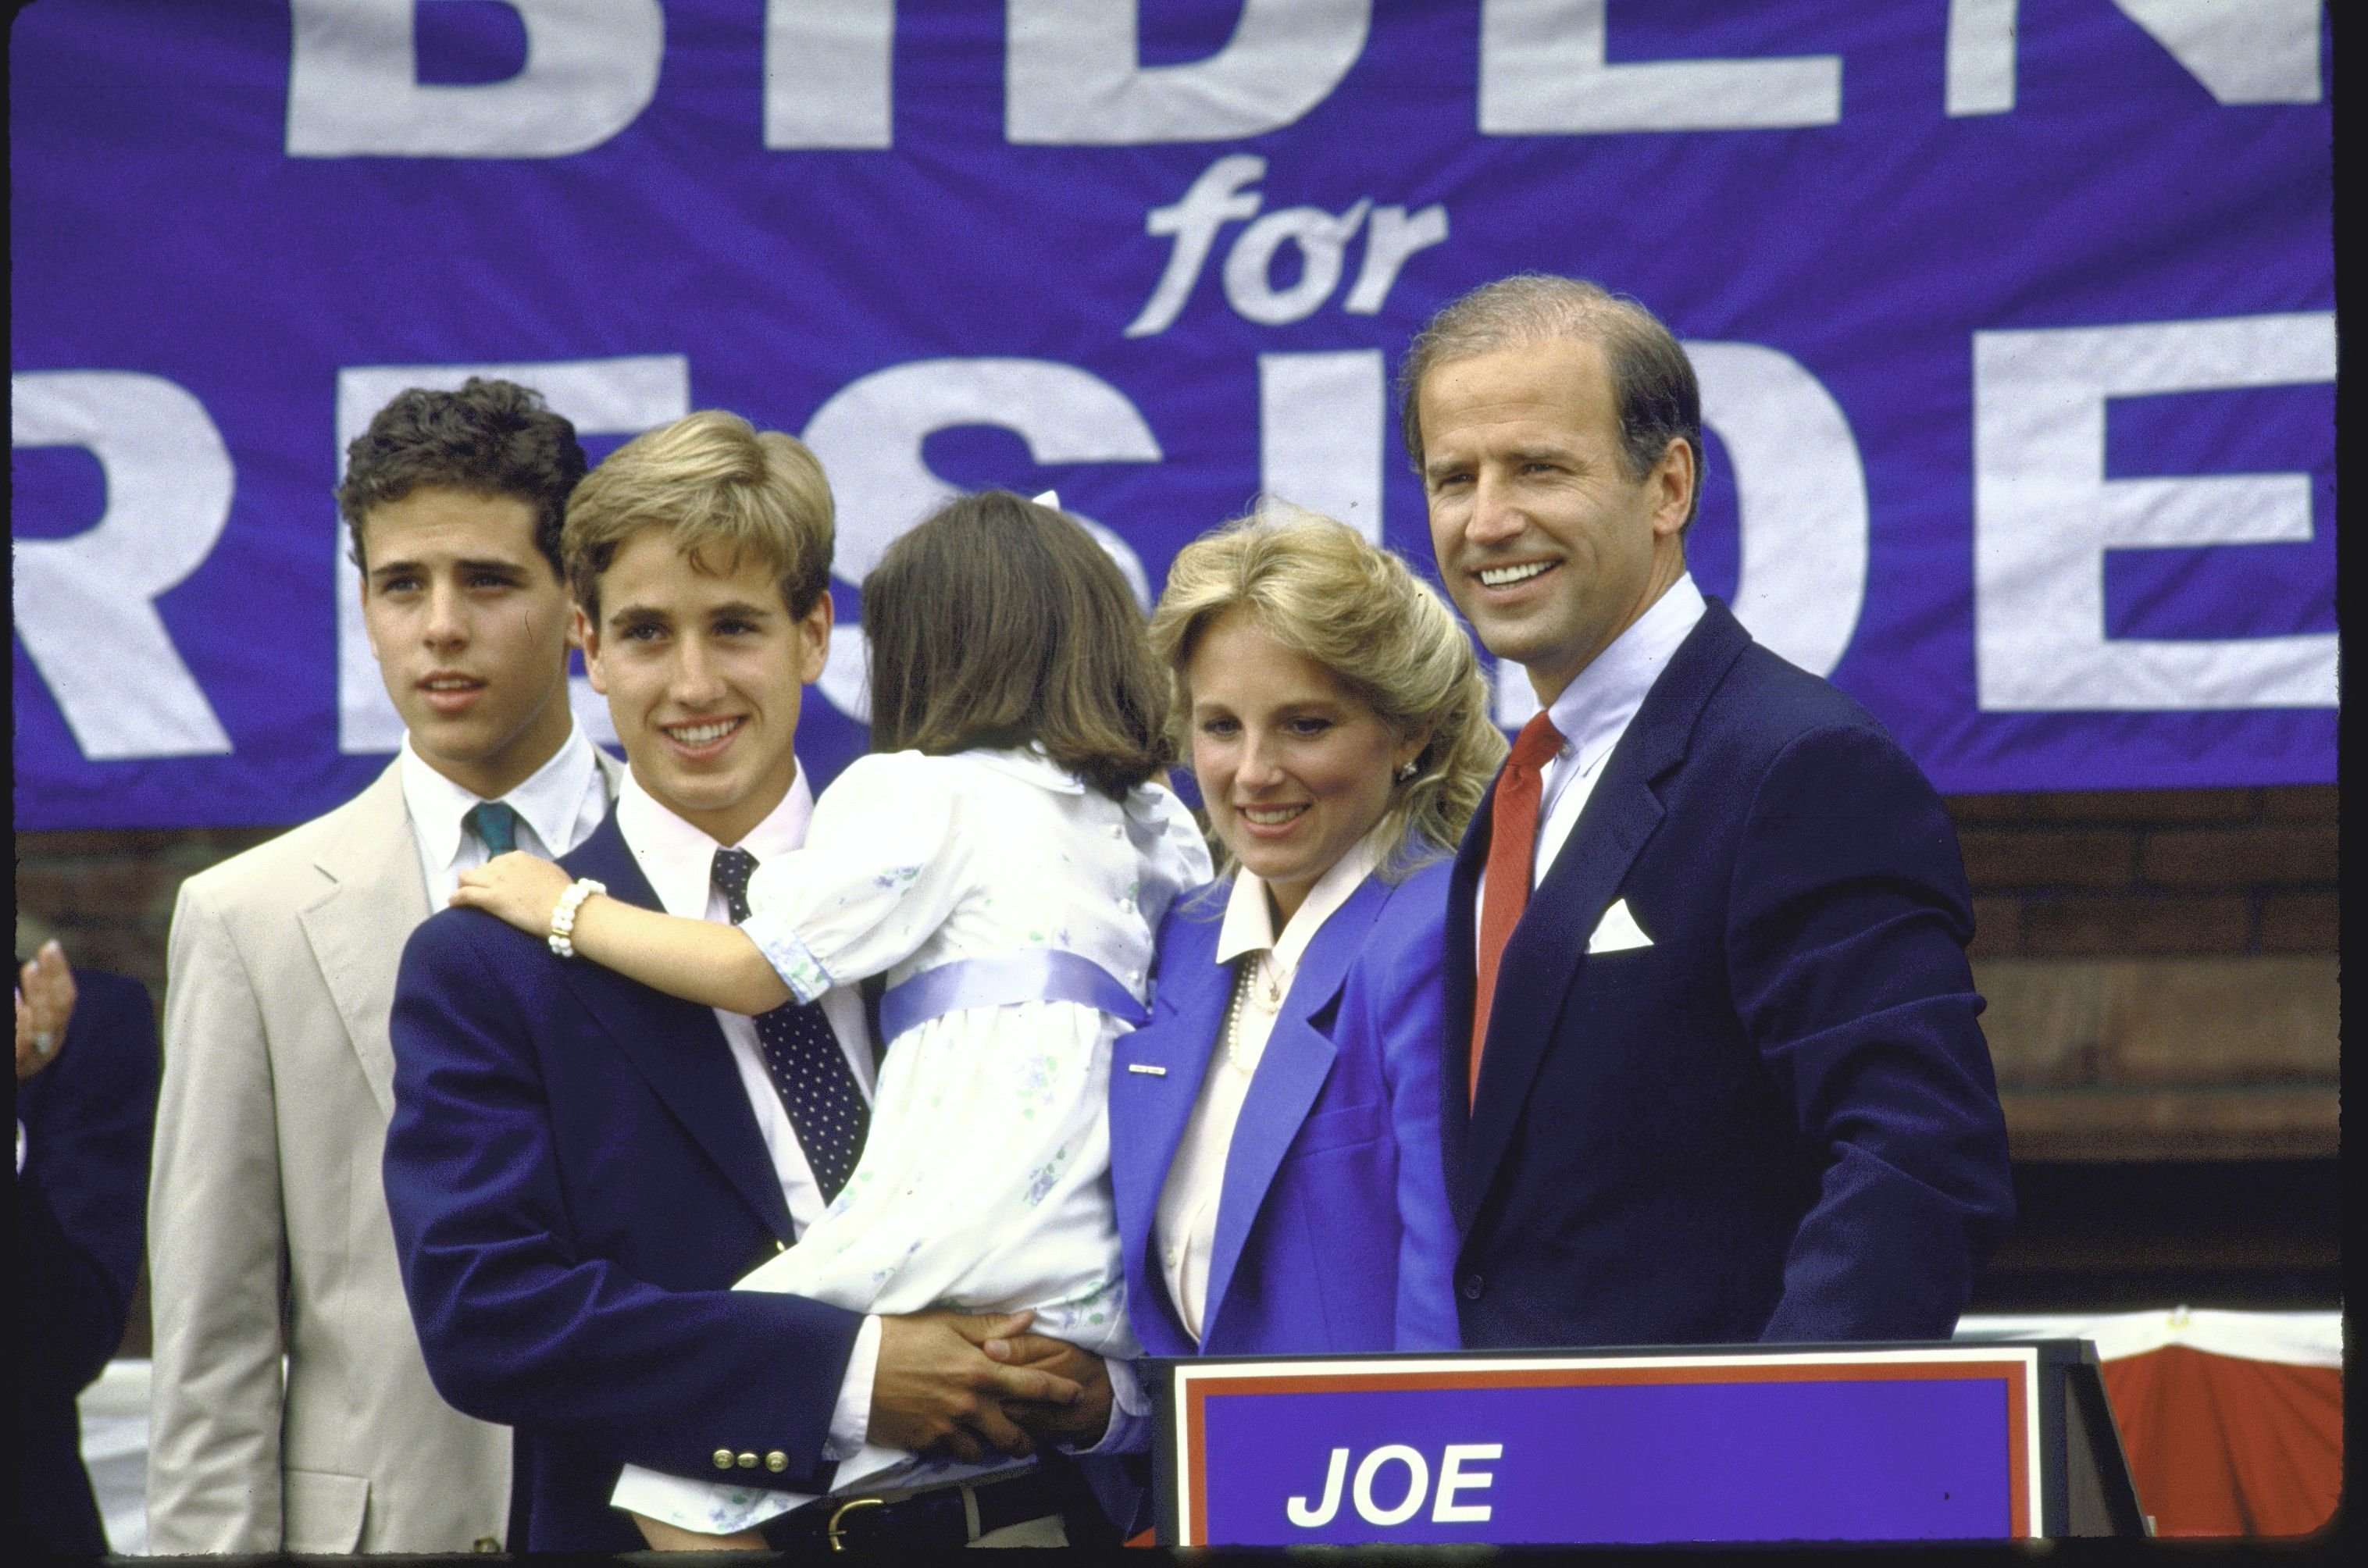 Joe Biden with sons Beau and Hunter, as well as daughter Ashley and wife Jill after announcing his candidacy for the Democratic presidential nomination | Photo: Cynthia Johnson/The LIFE Images Collection via Getty Images